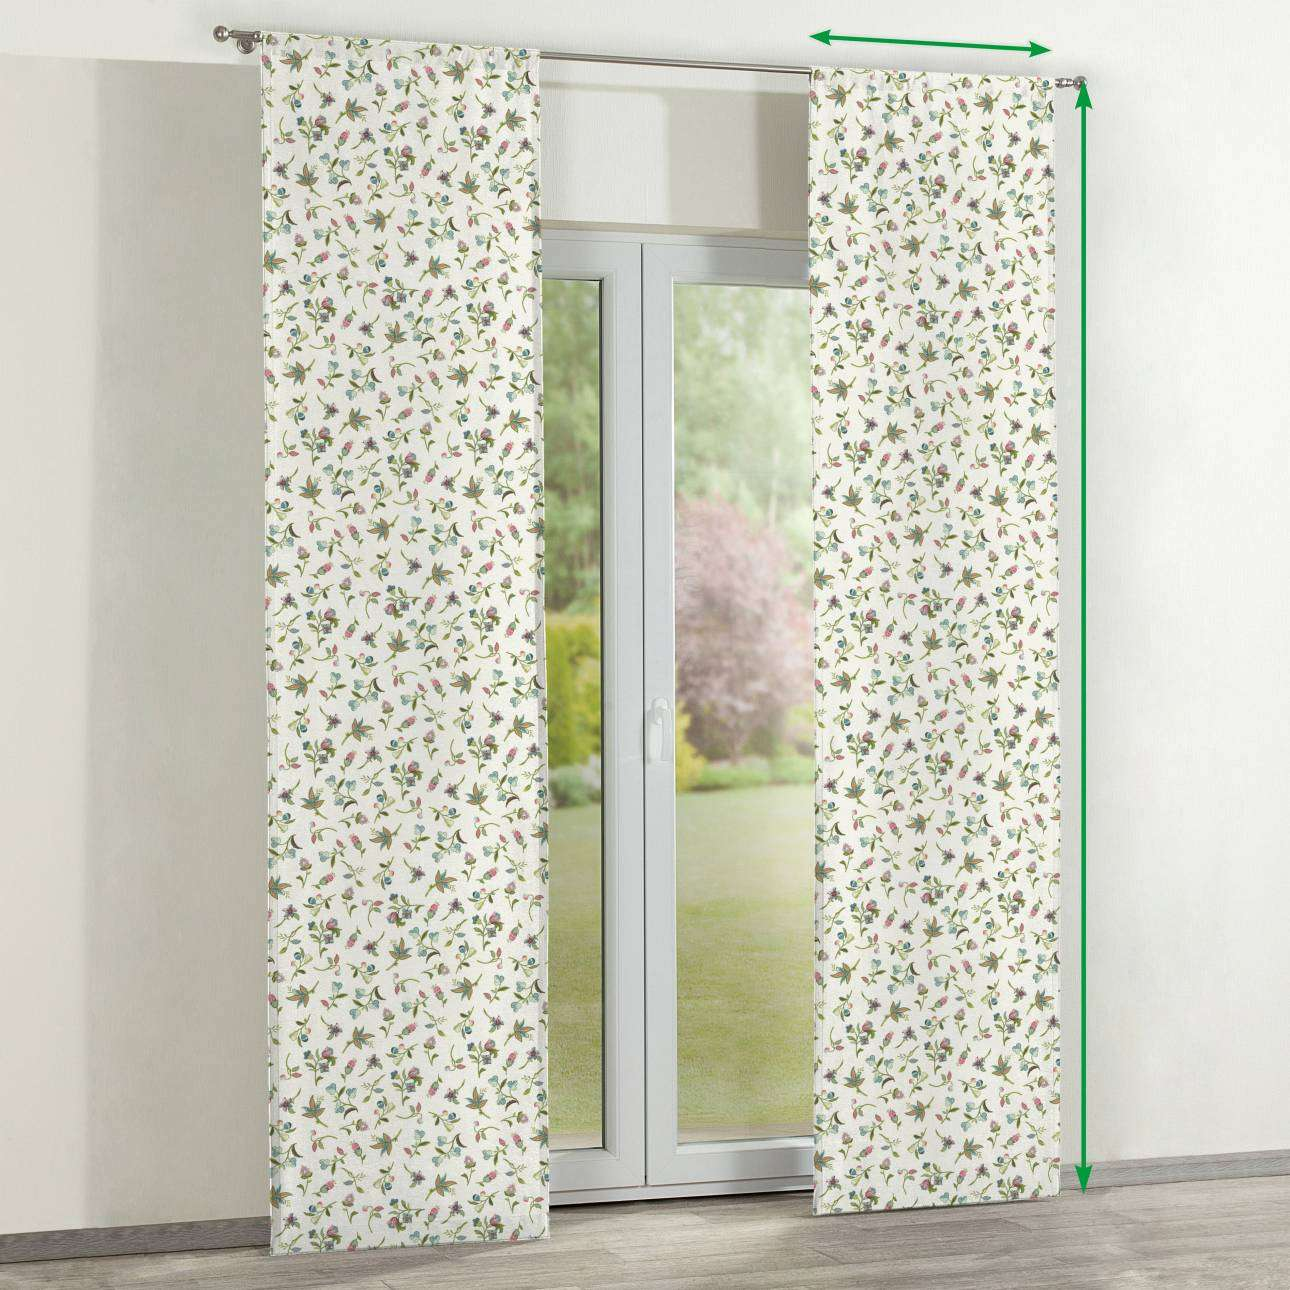 Slot panel curtains – Set of 2 in collection Londres, fabric: 122-02